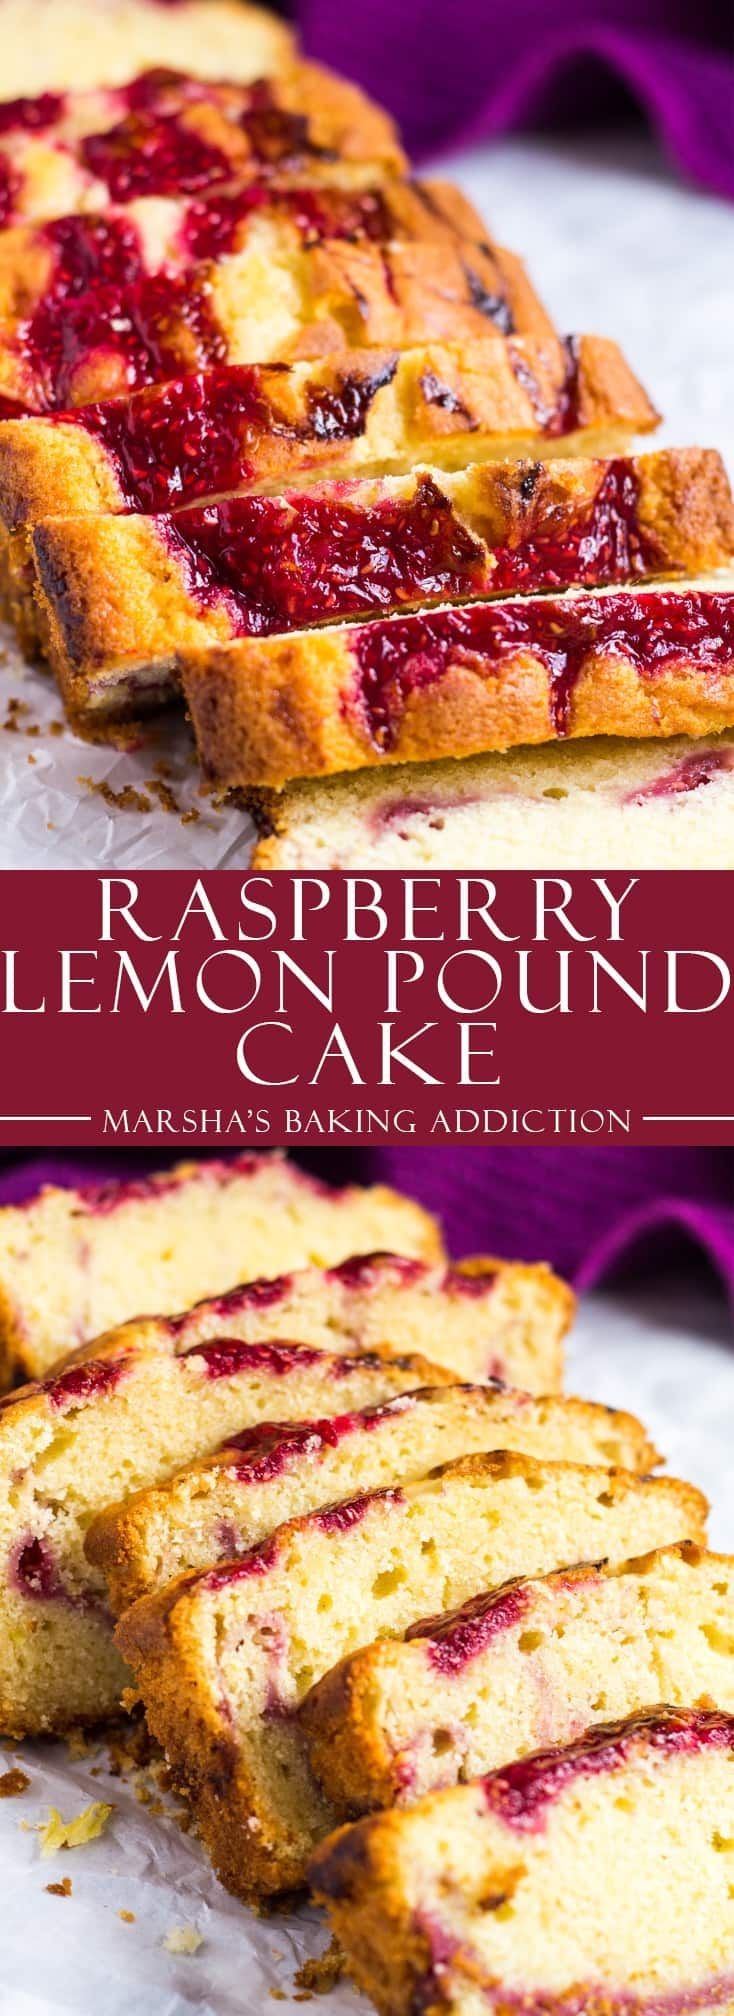 Raspberry Swirl Lemon Pound Cake | marshasbakingaddiction.com @marshasbakeblog